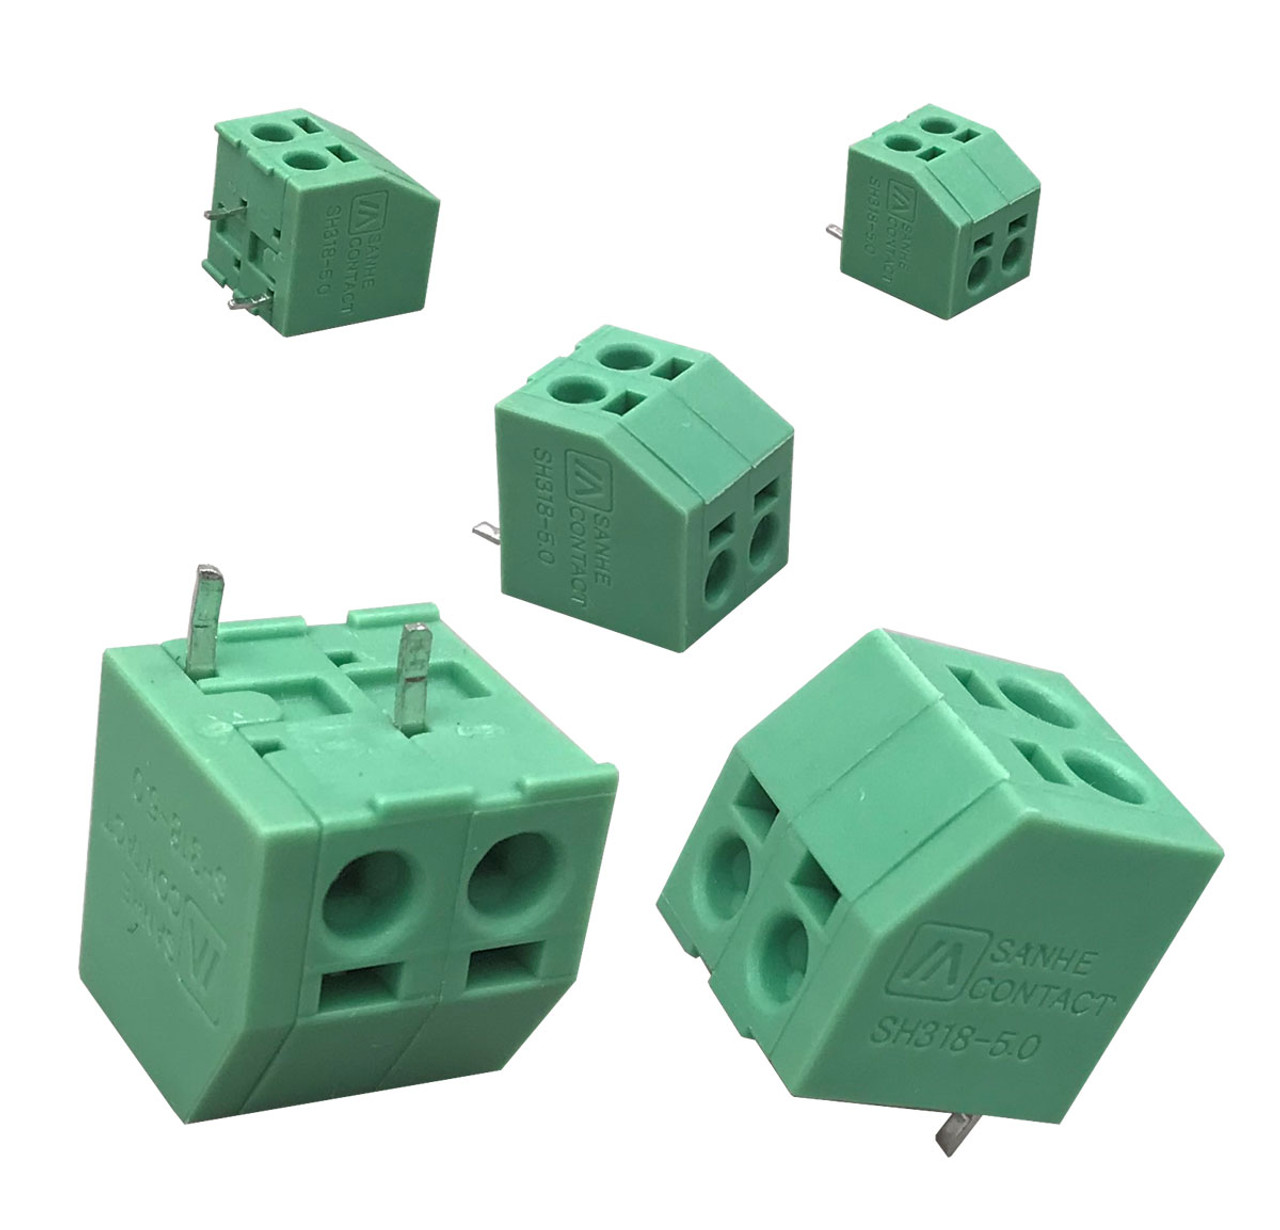 """2 PIN 2.54mm(0.1"""") Pitch PCB Universal Screw Terminal Blocks Board to Wire Connector Straight Pin Terminals"""